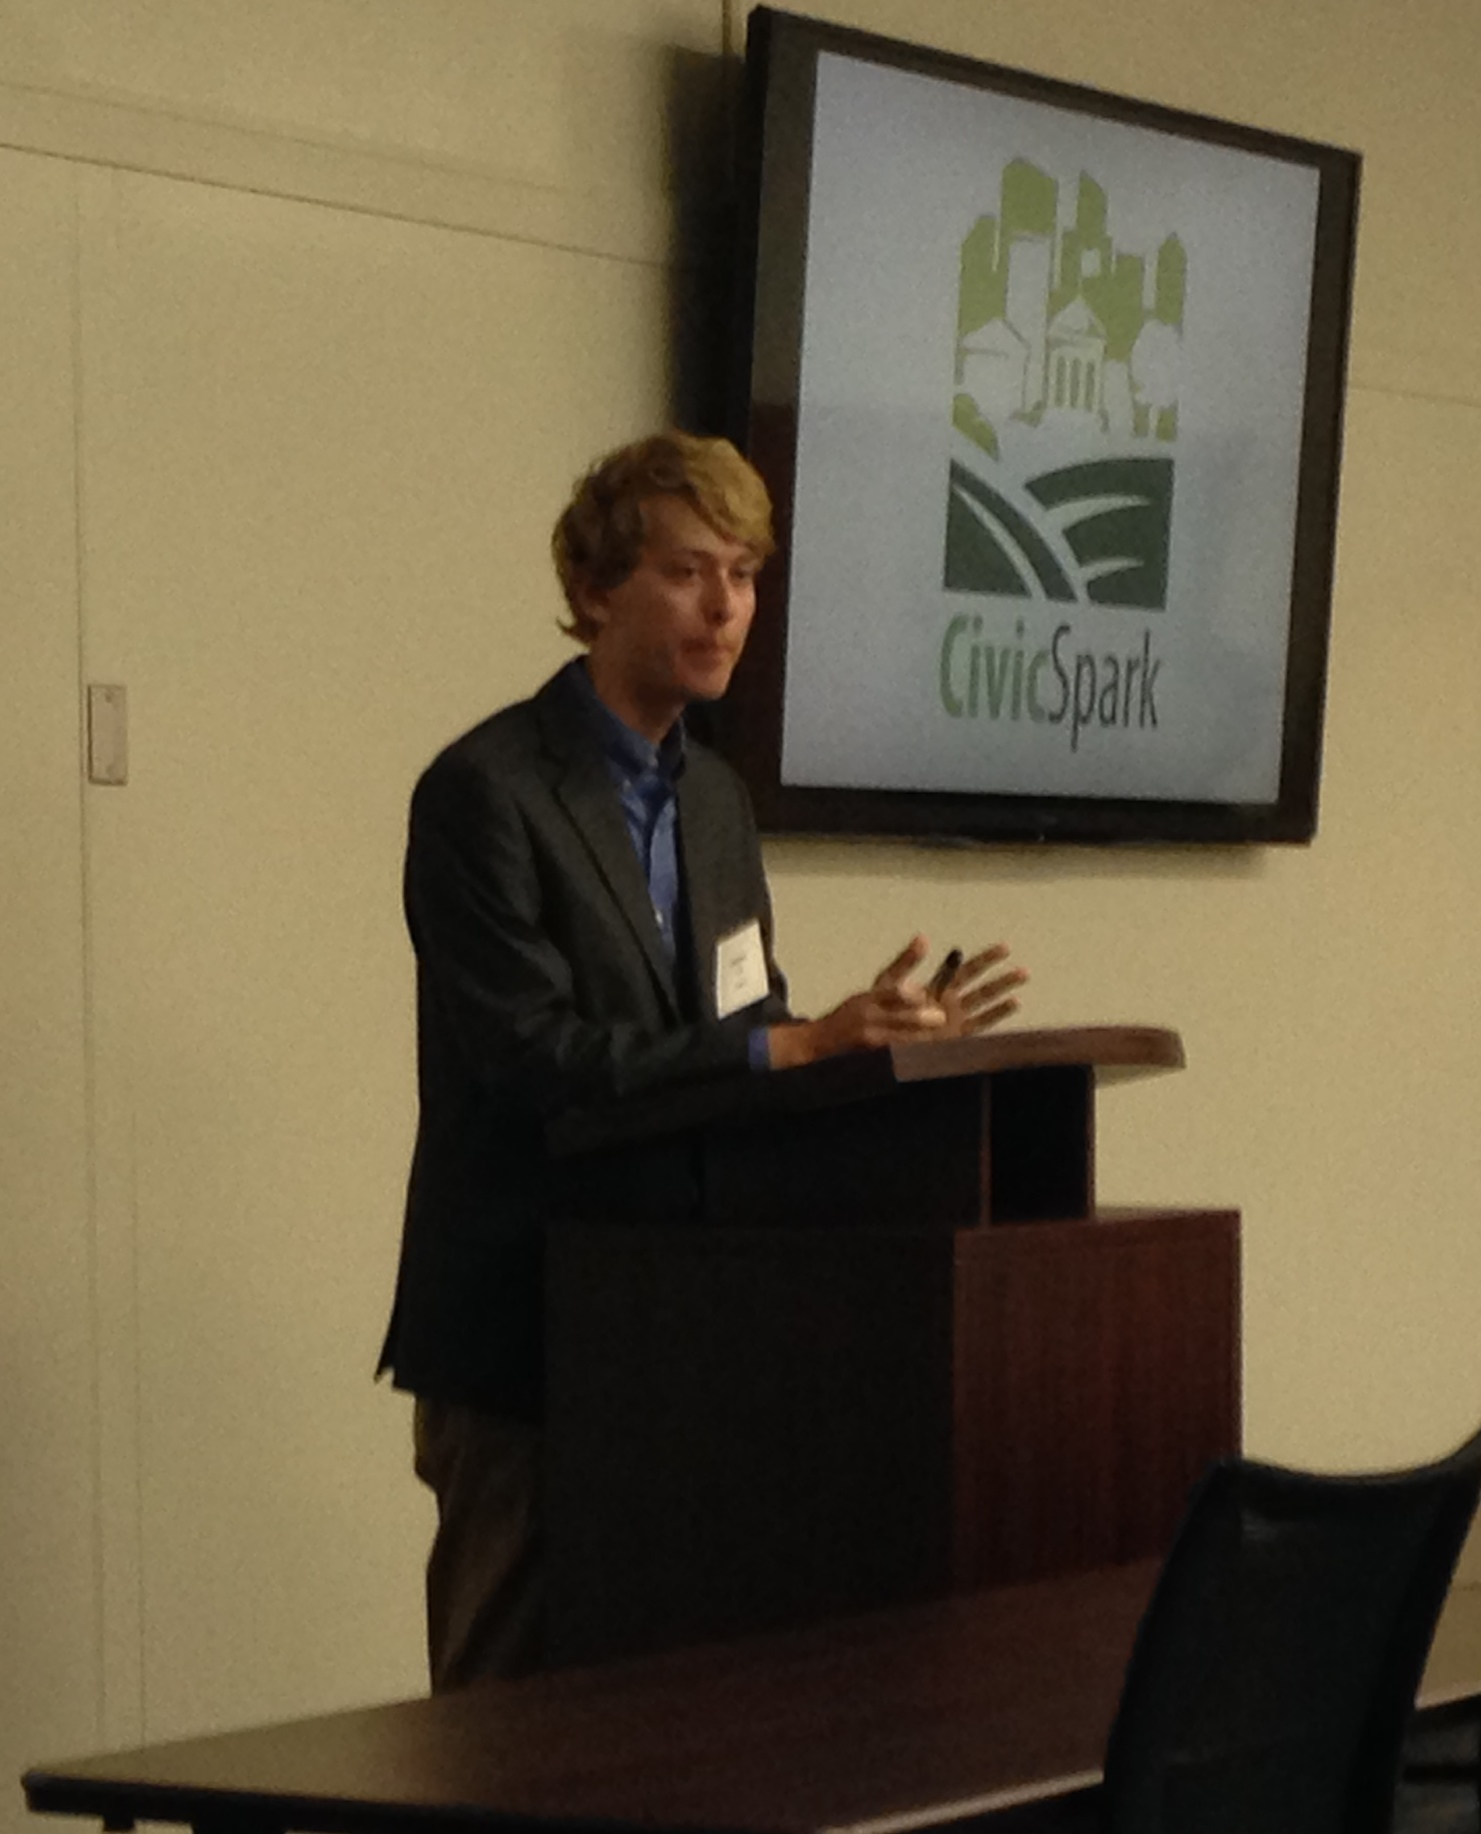 Civicspark member, Andrew Kopp, describes program details to our audience